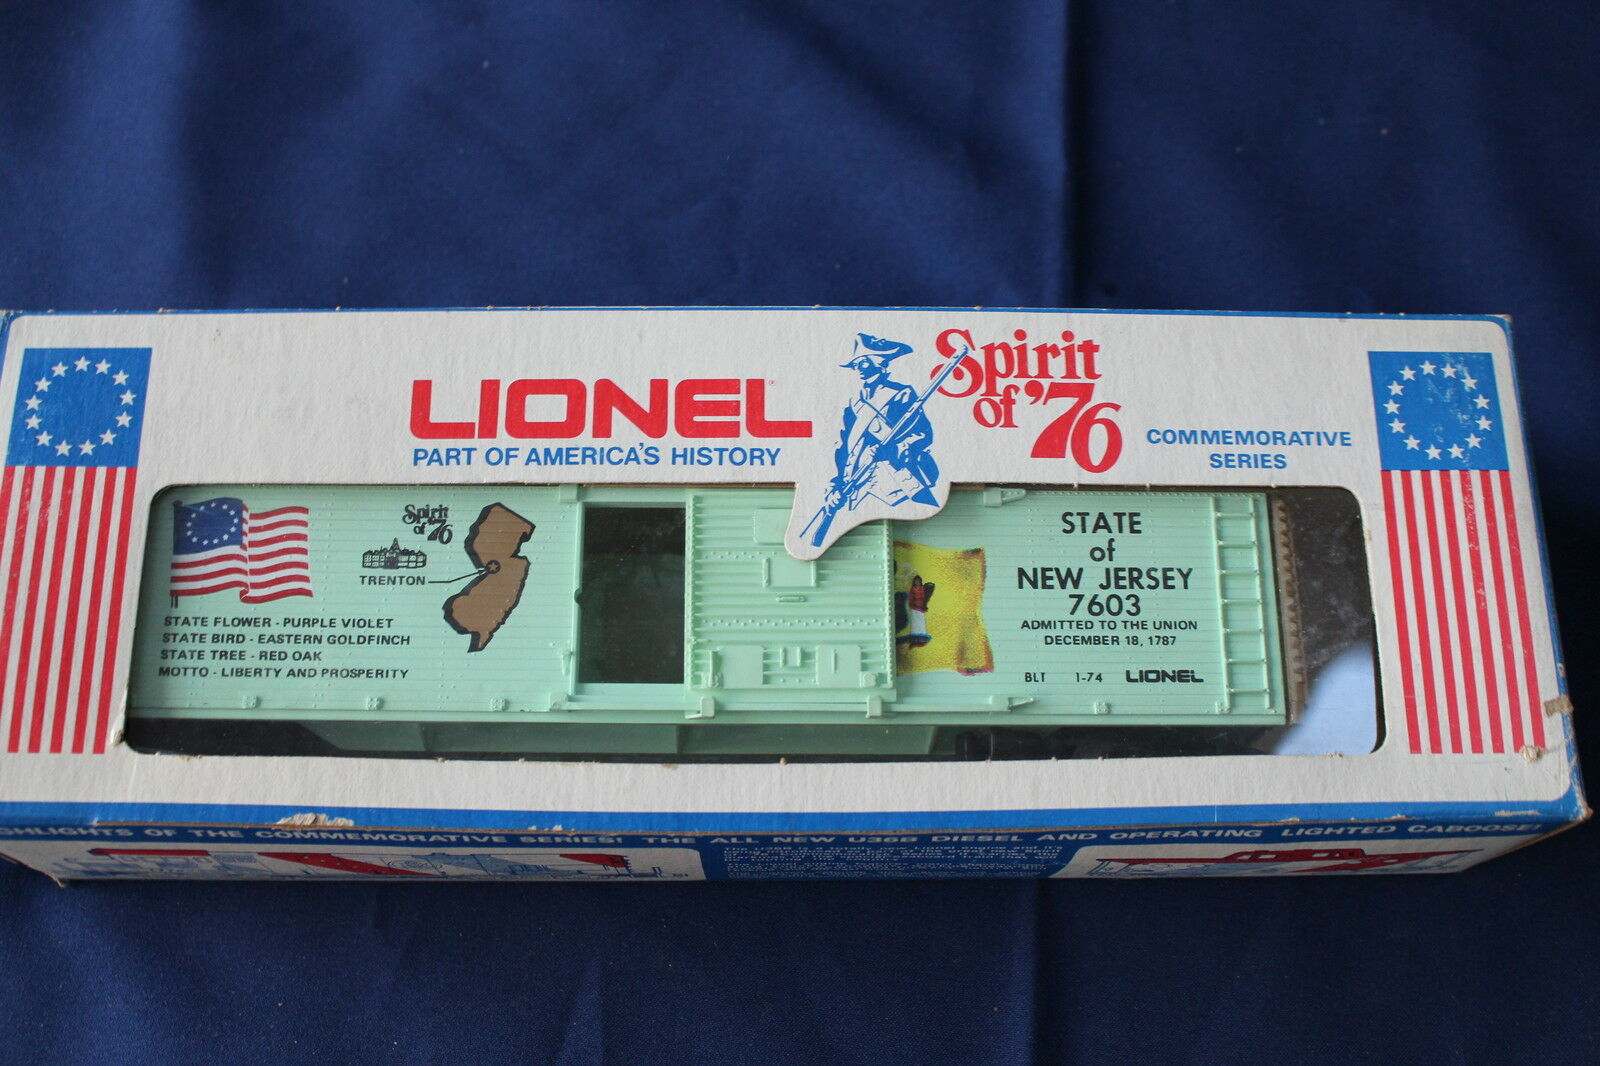 1974 Lionel 6-7603 State of New Jersey Spirit of '76 Commem Box Car L2973